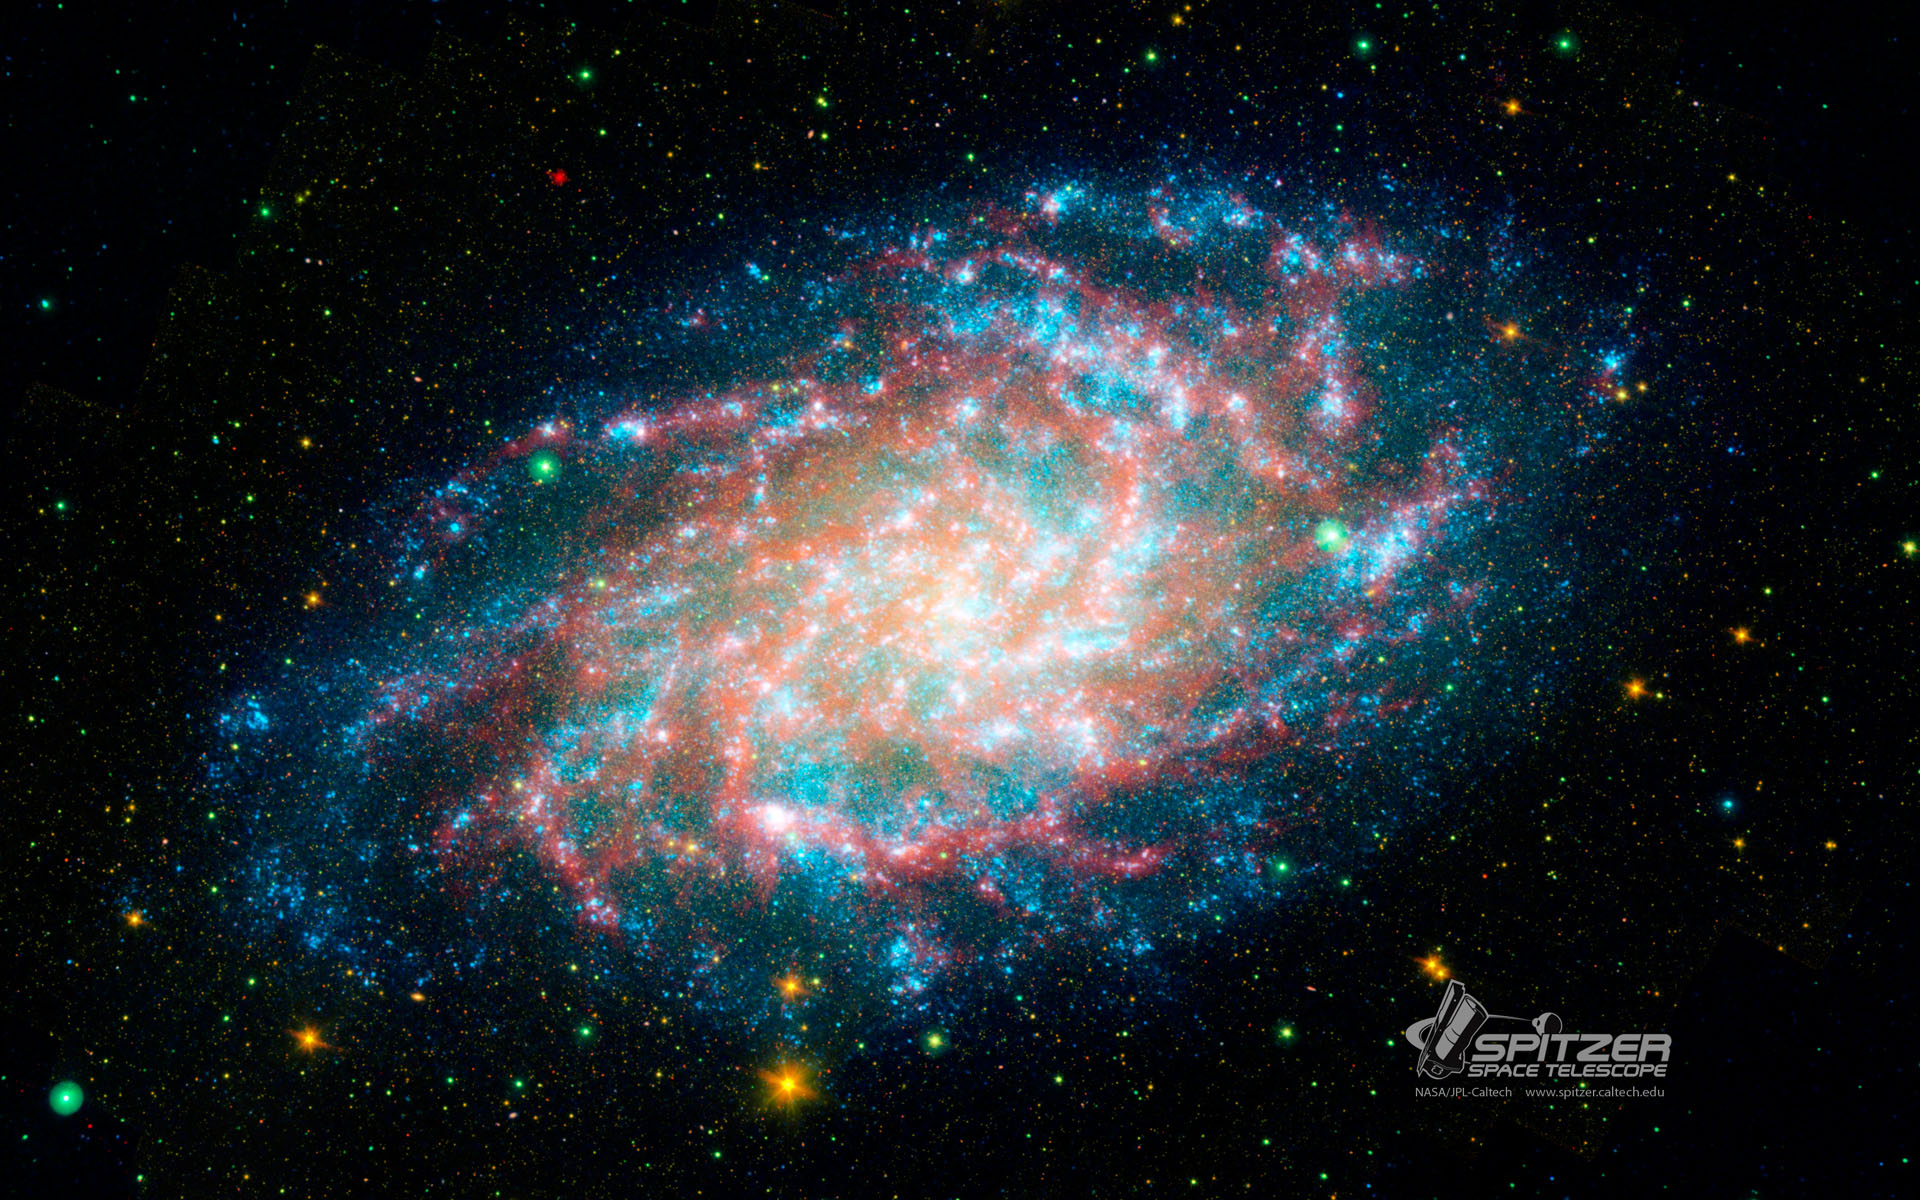 wallpapers - nasa spitzer space telescope